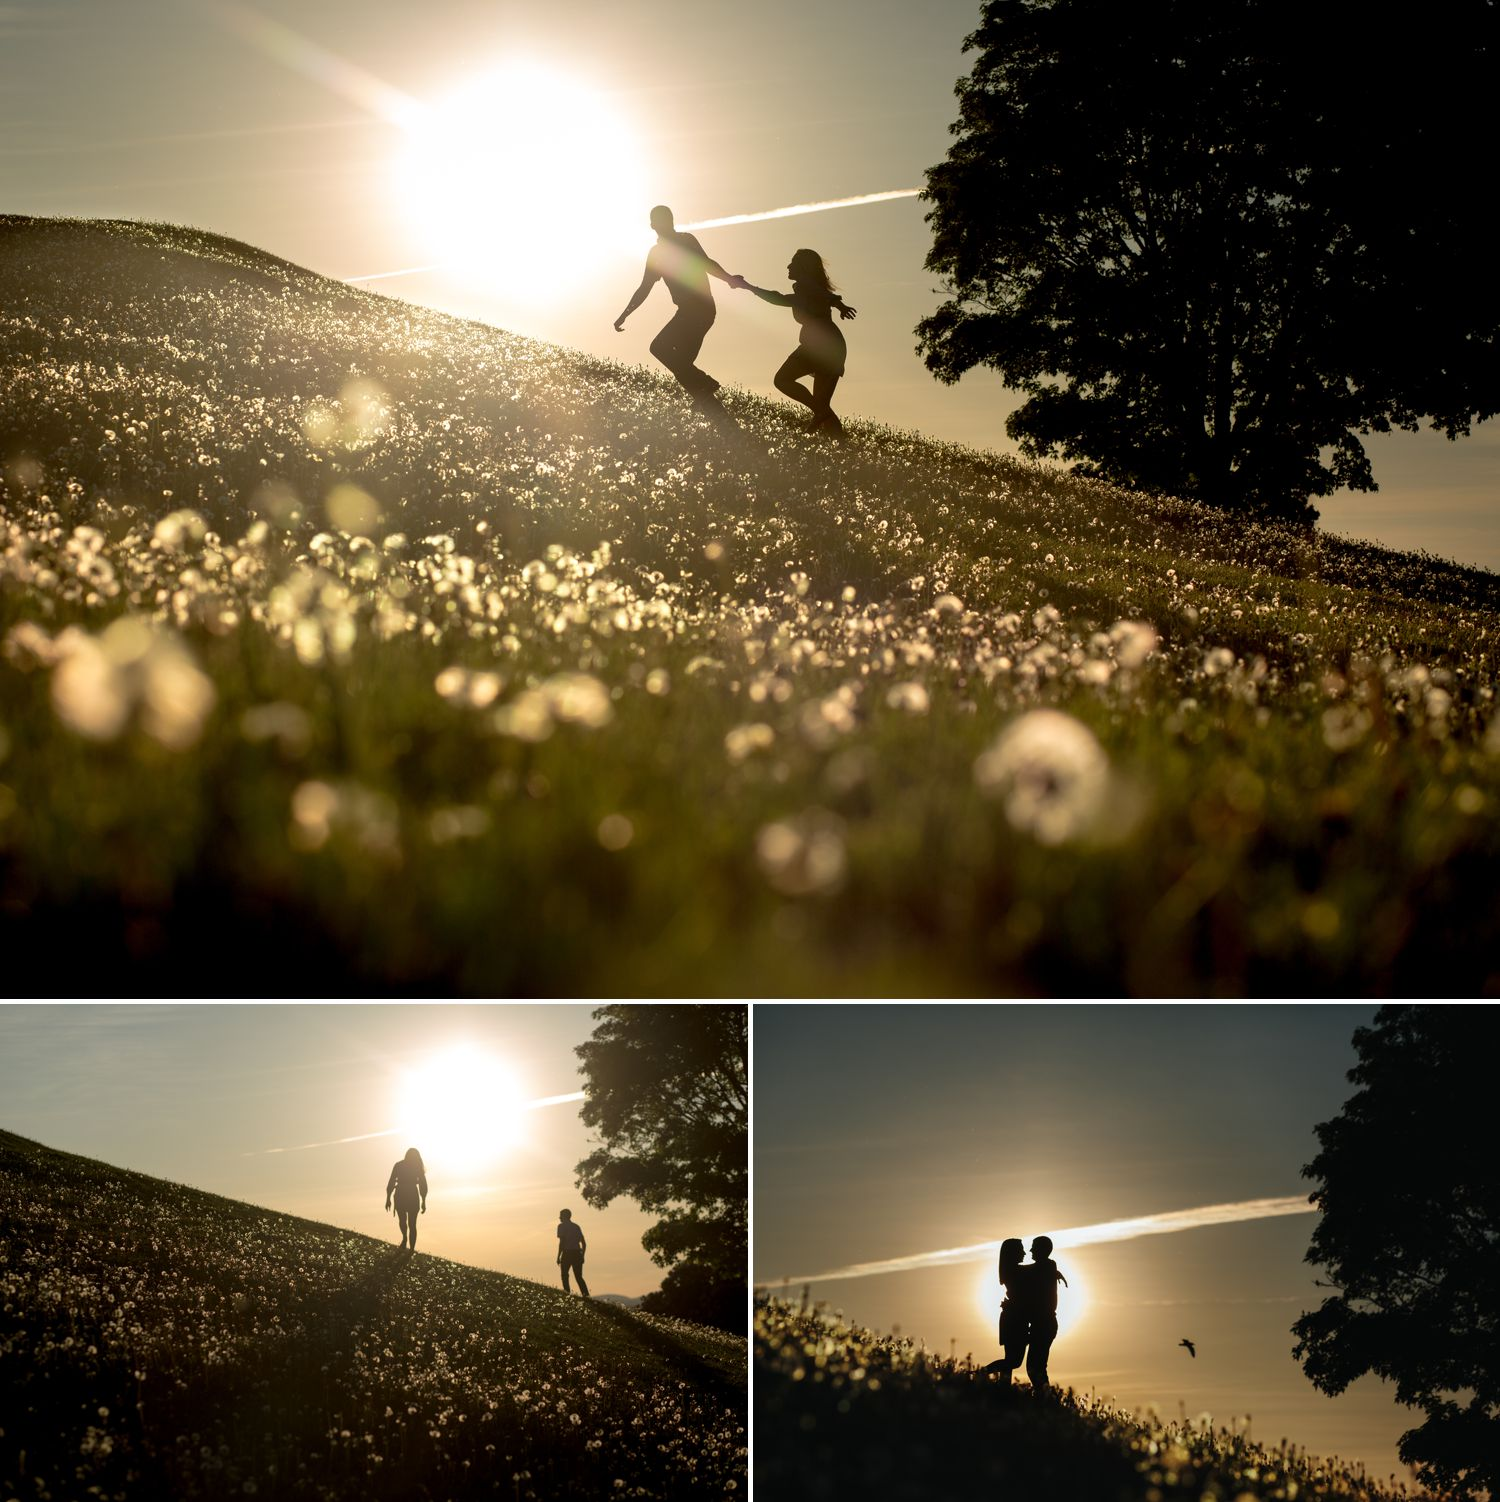 Photos from an engagement shoot in a downtown Ottawa park with the couple silhouetted against the setting sun